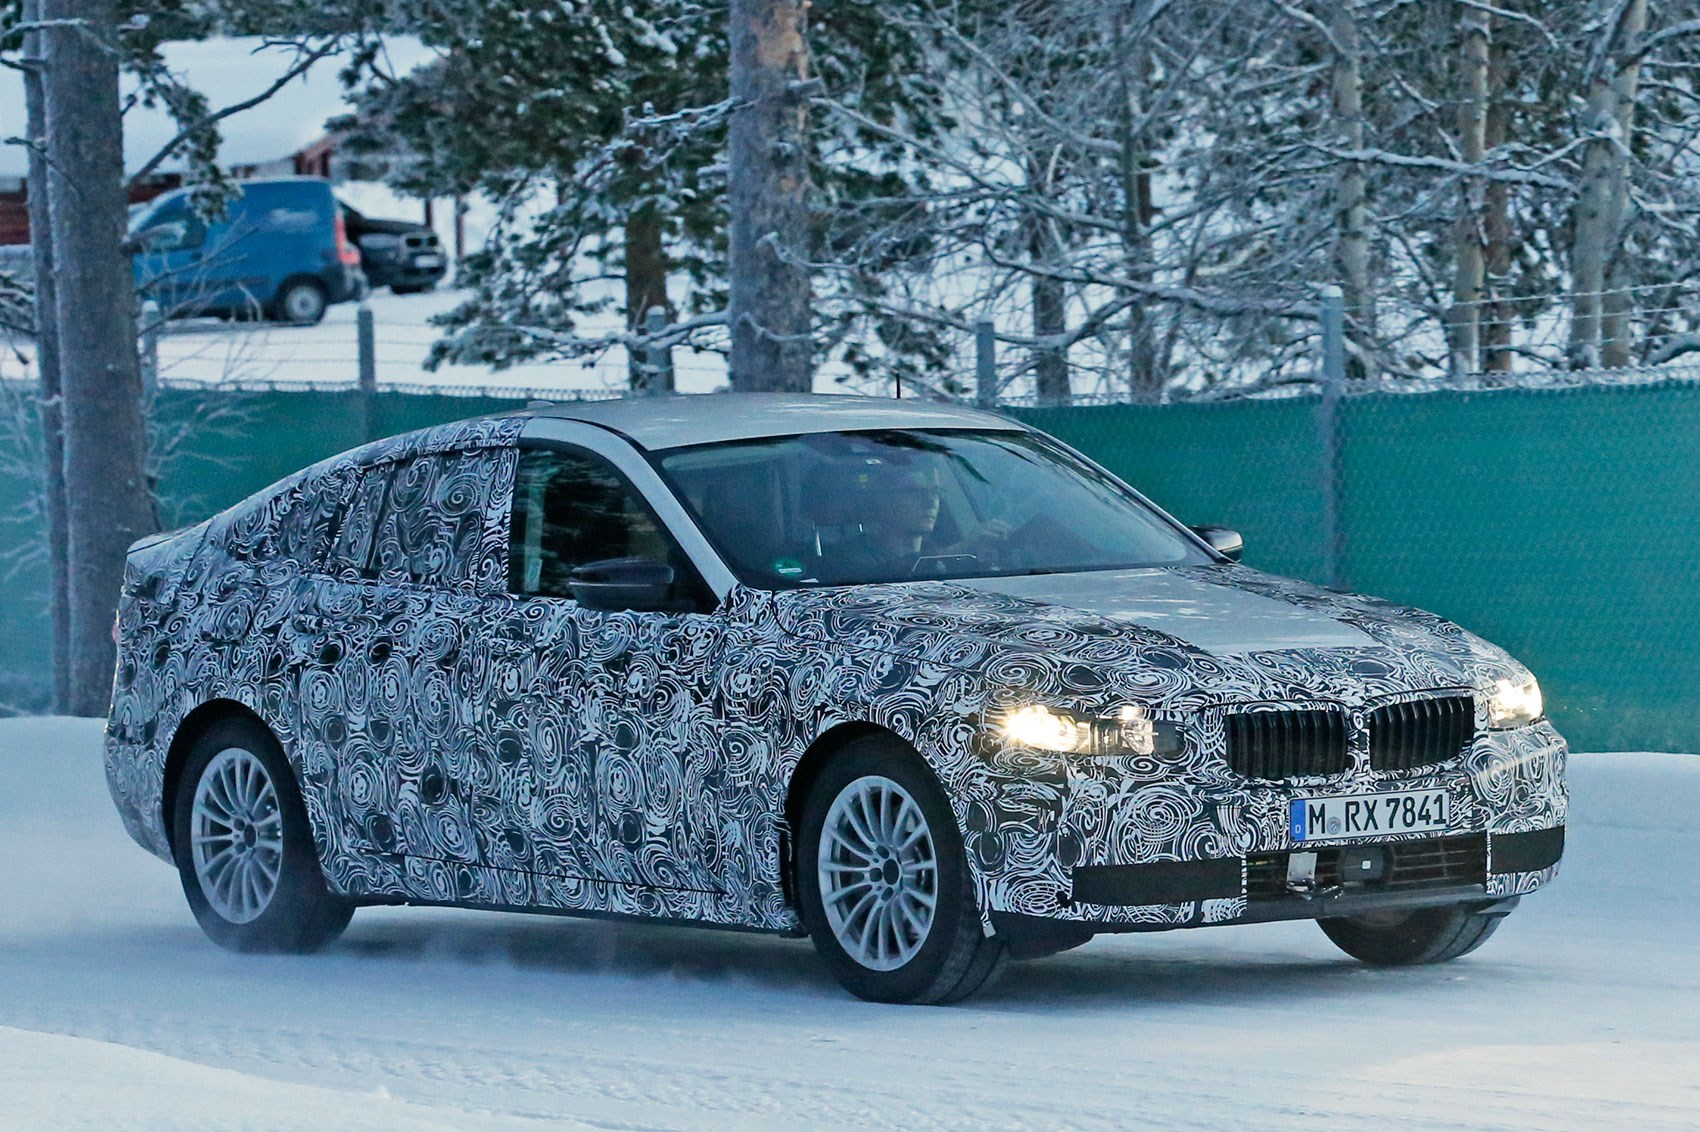 2016 bmw 5 series gran turismo testing in sweden new gt is expected to reach market shortly before the new 5 series saloon